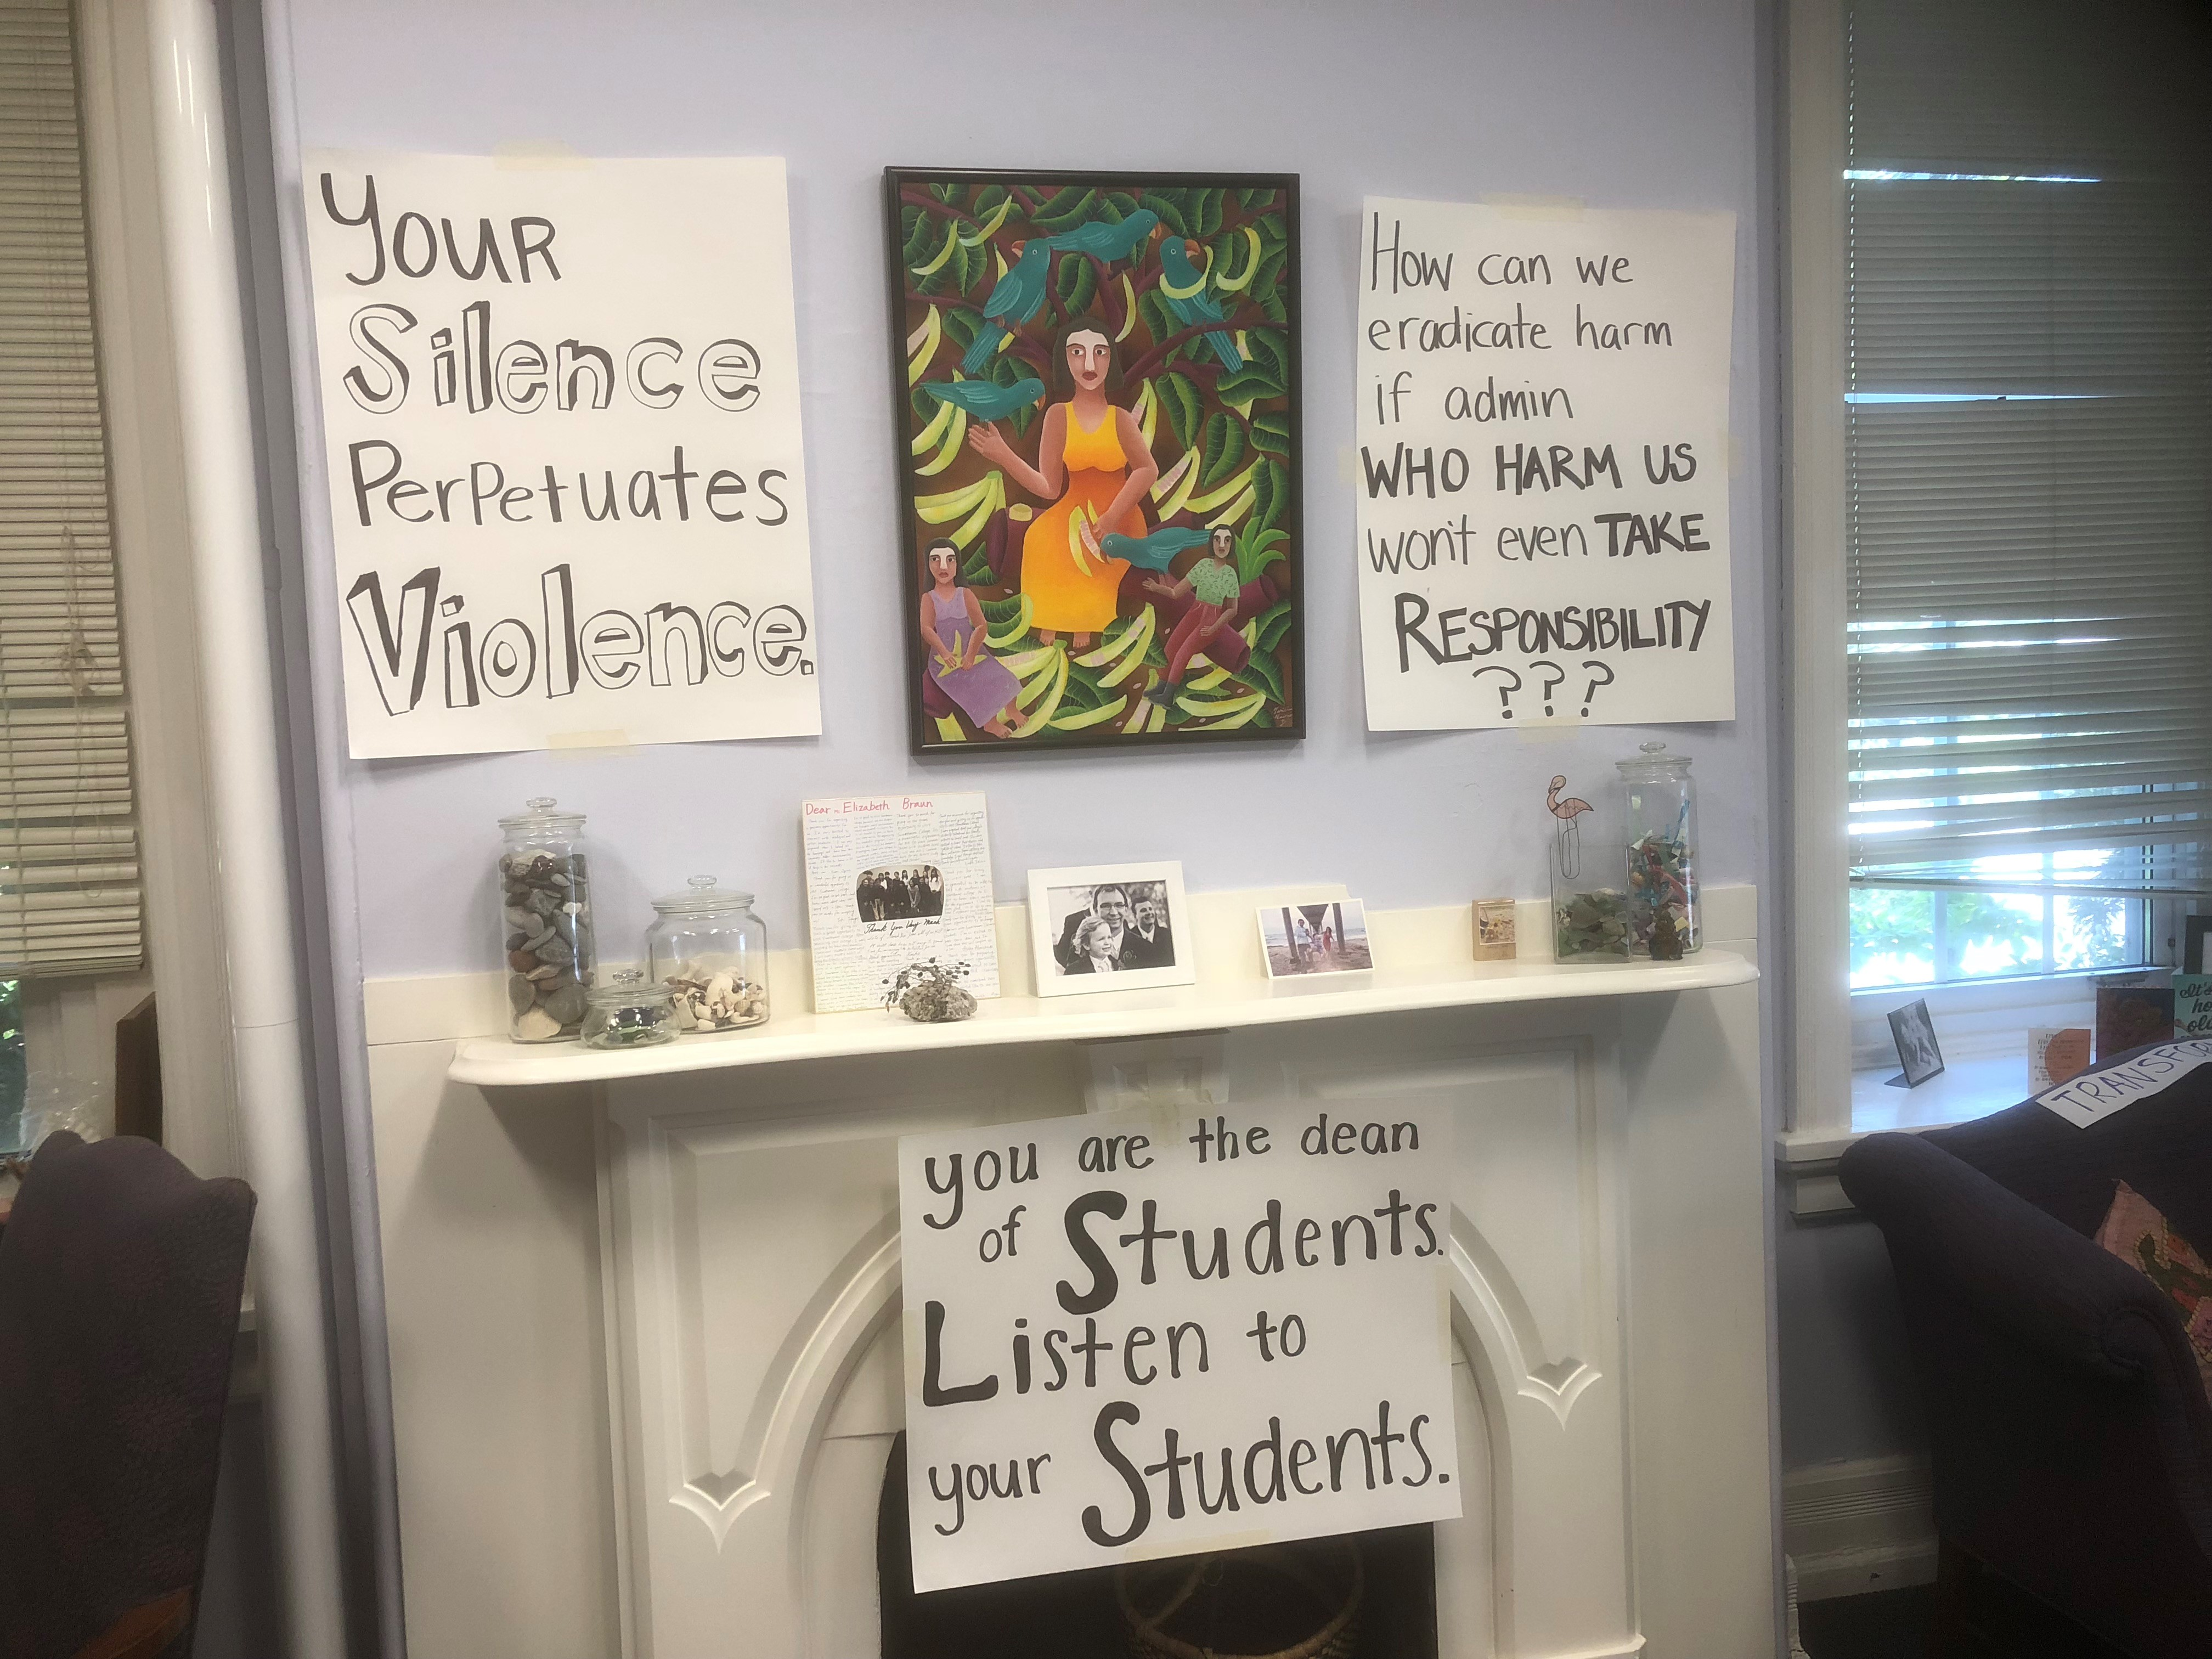 Students from Swarthmore College papered the walls of Dean of Students H. Elizabeth Braun´s office with protest signs during a nine-day sit-in.